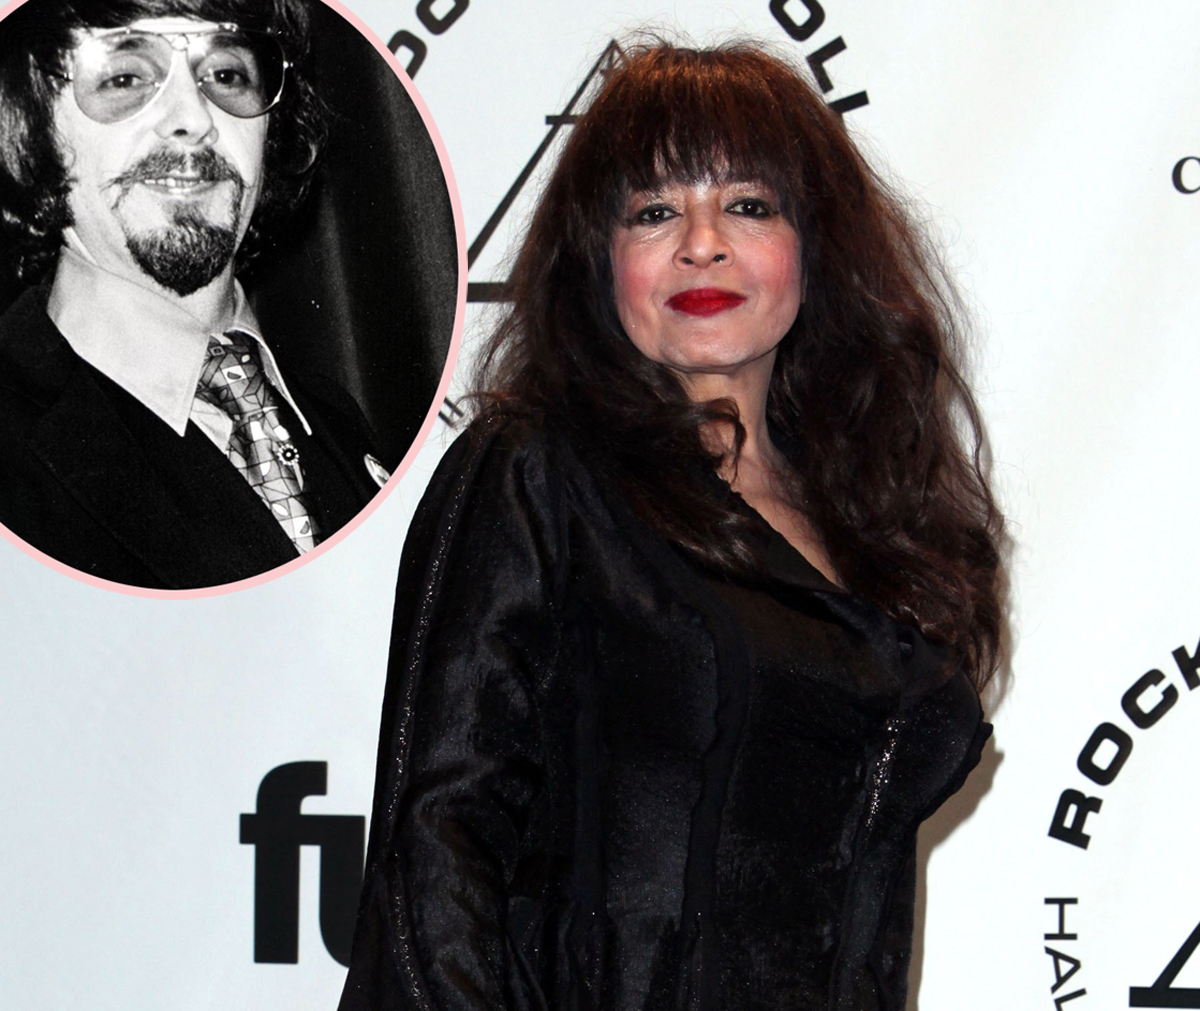 Ronnie Spector reacts ex husband phil spector death